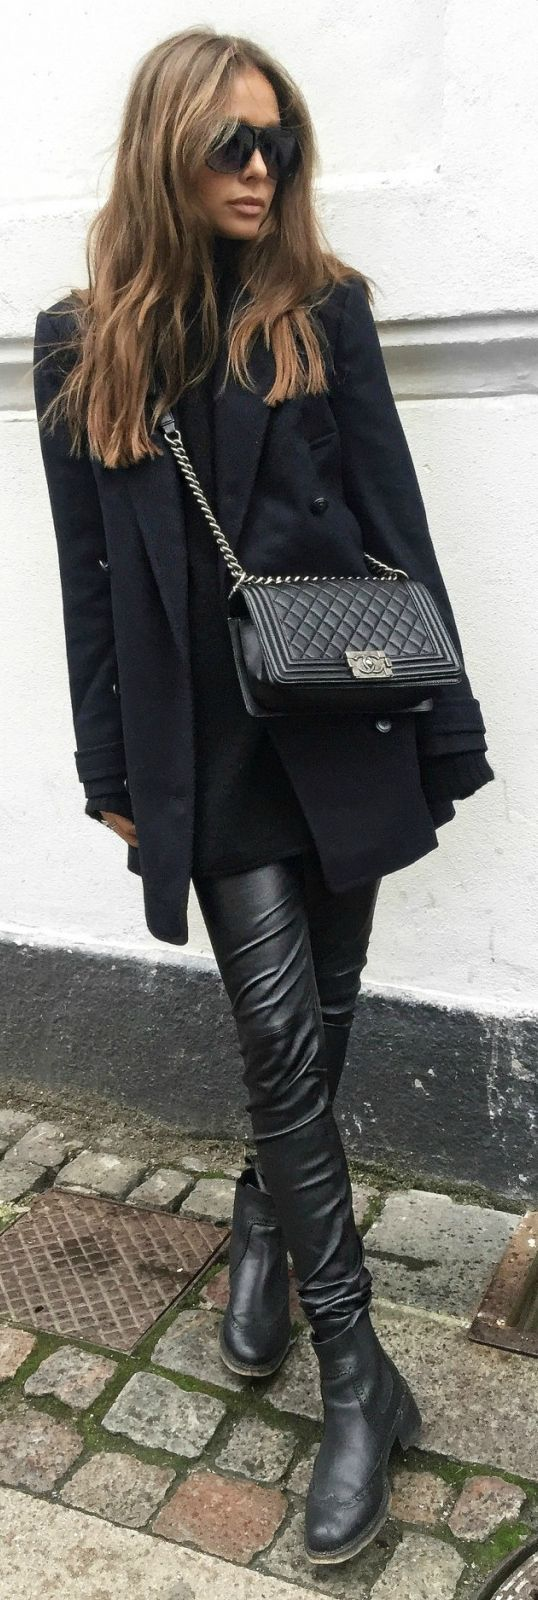 Leather leggings are the perfect choice for an all black look. Maria Kragmann wears a pair with gorgeous Chelsea boots and an oversized blazer from Pepe Jeans.   Coat: Pepe Jeans, Trousers: Asos, Boots: Kurt Geiger, Bag: Chanel....   Style Inspiration